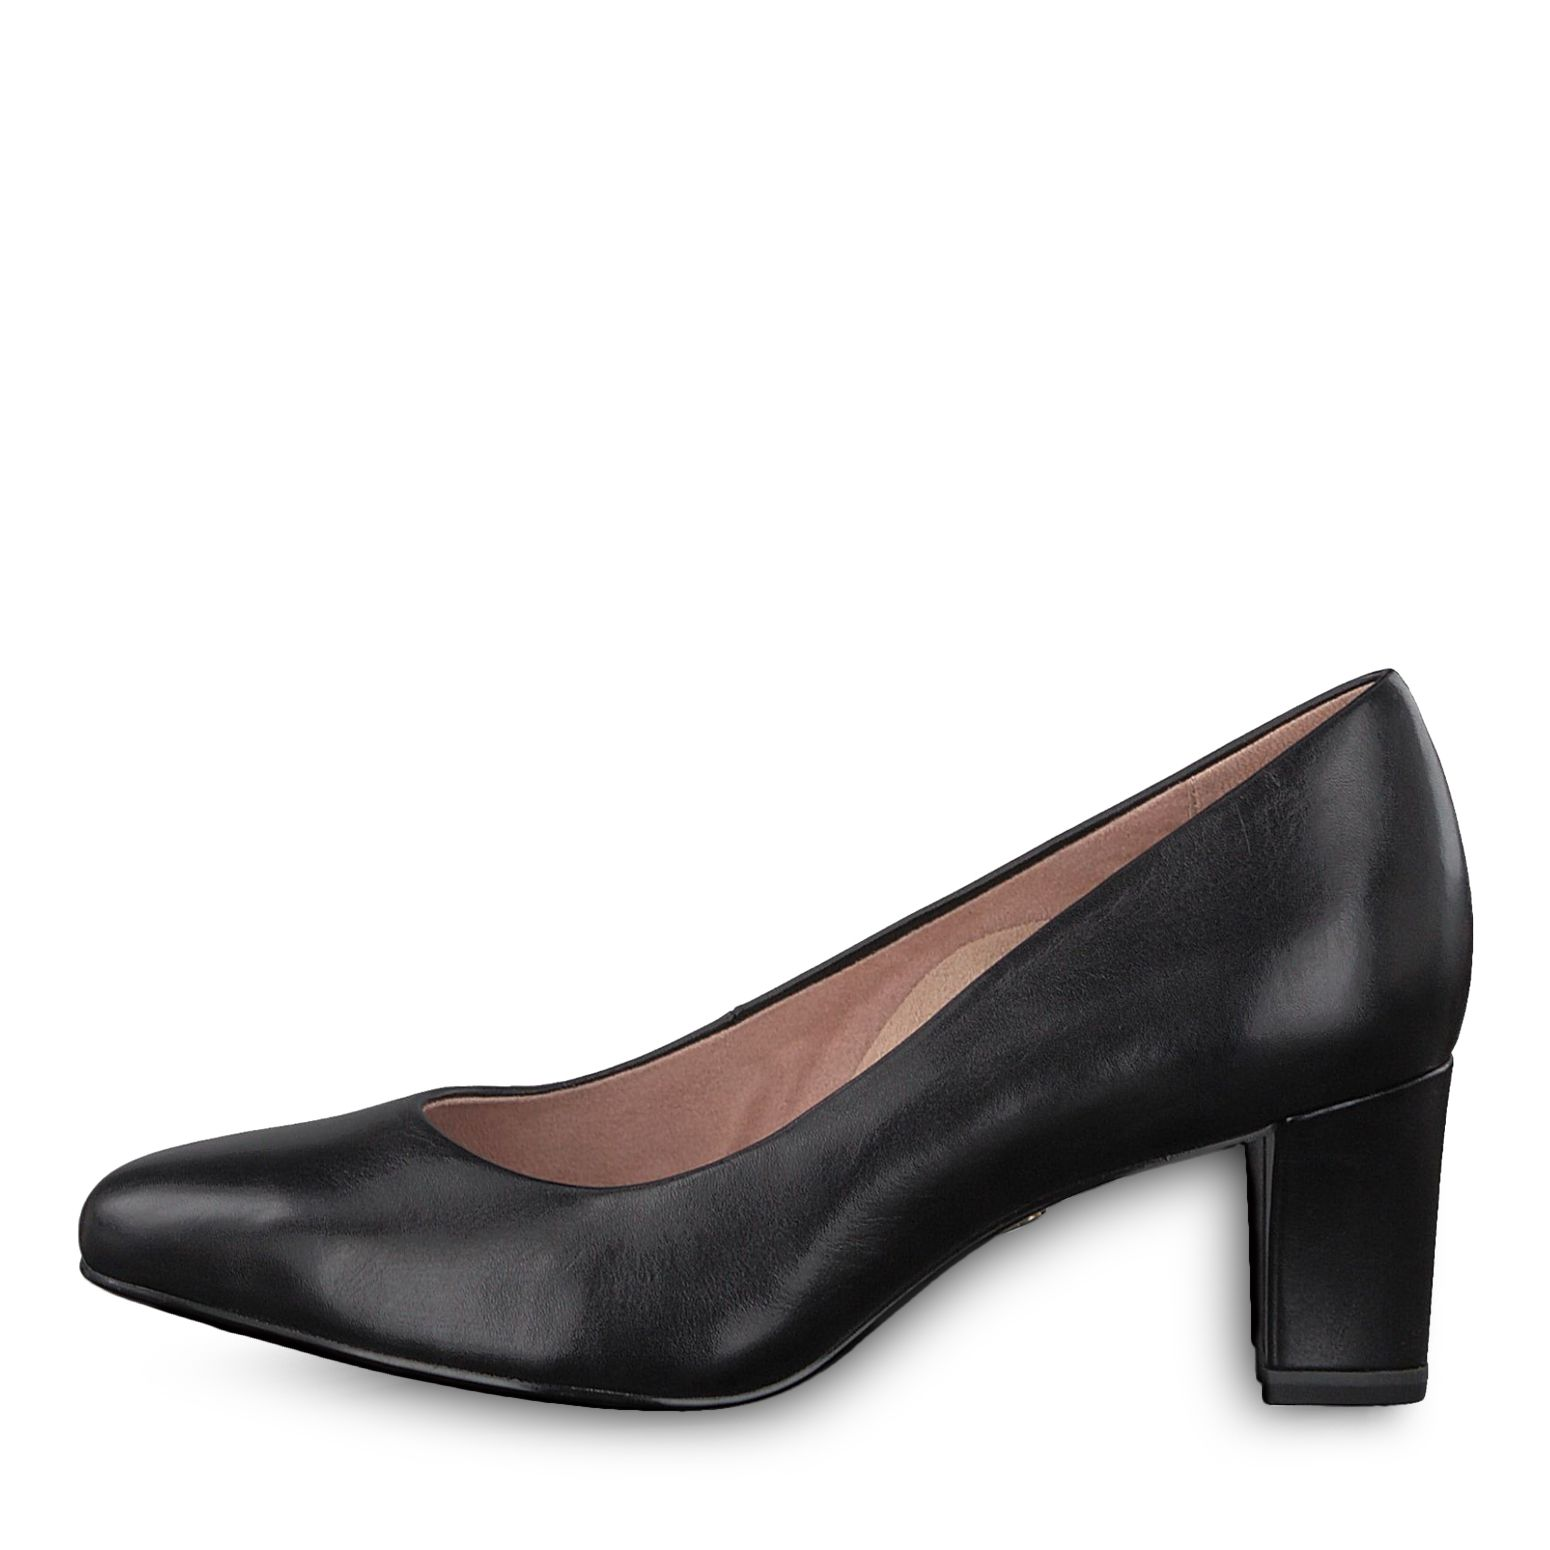 Tamaris pumps laurentine, black, hi-res YLIXMVB